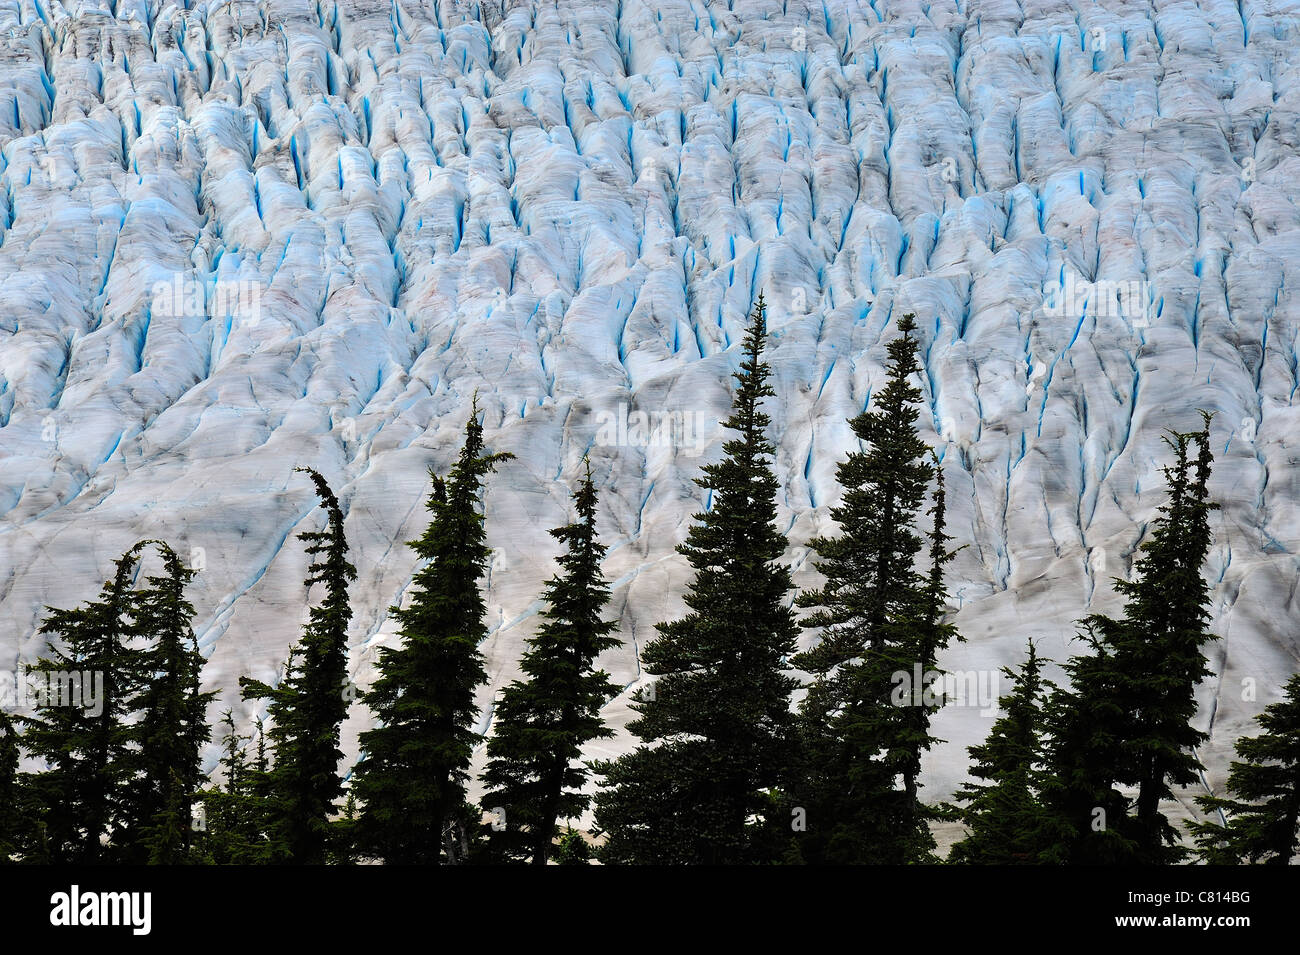 A close up image of the blue ice of the Salmon Glacier near Stewart British Columbia Canada - Stock Image